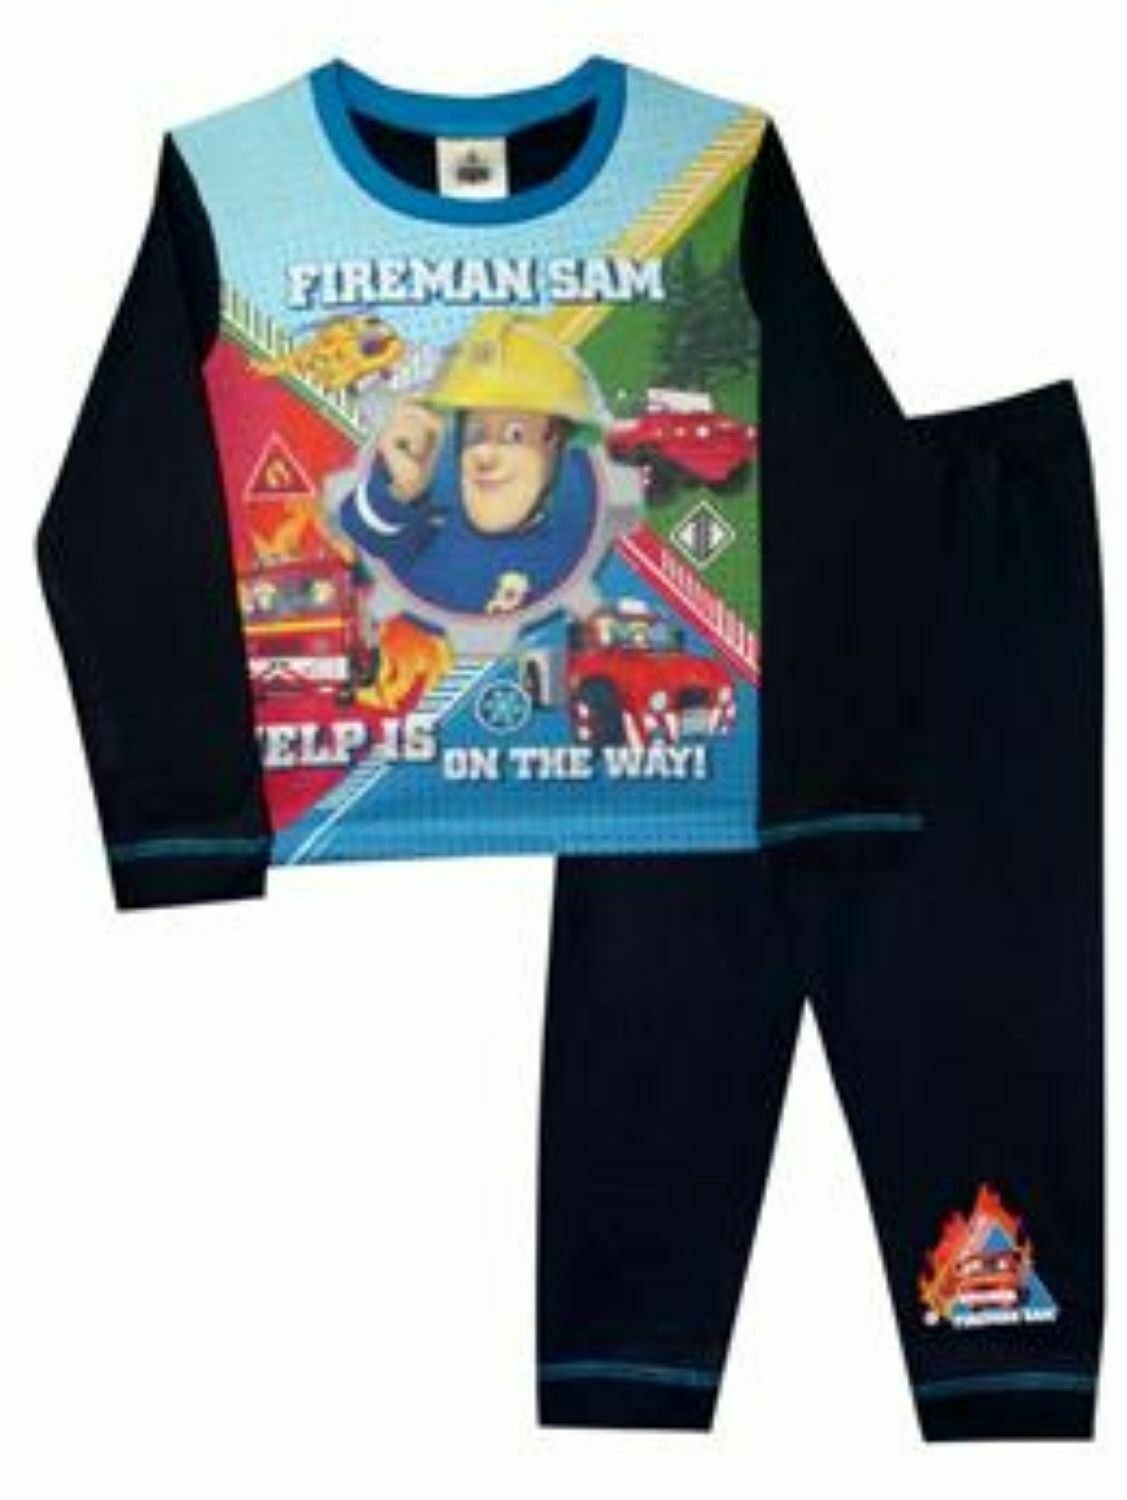 **REF12 Fireman Boys Pyjamas 4-5 Years reduced to clear slight damage see notes